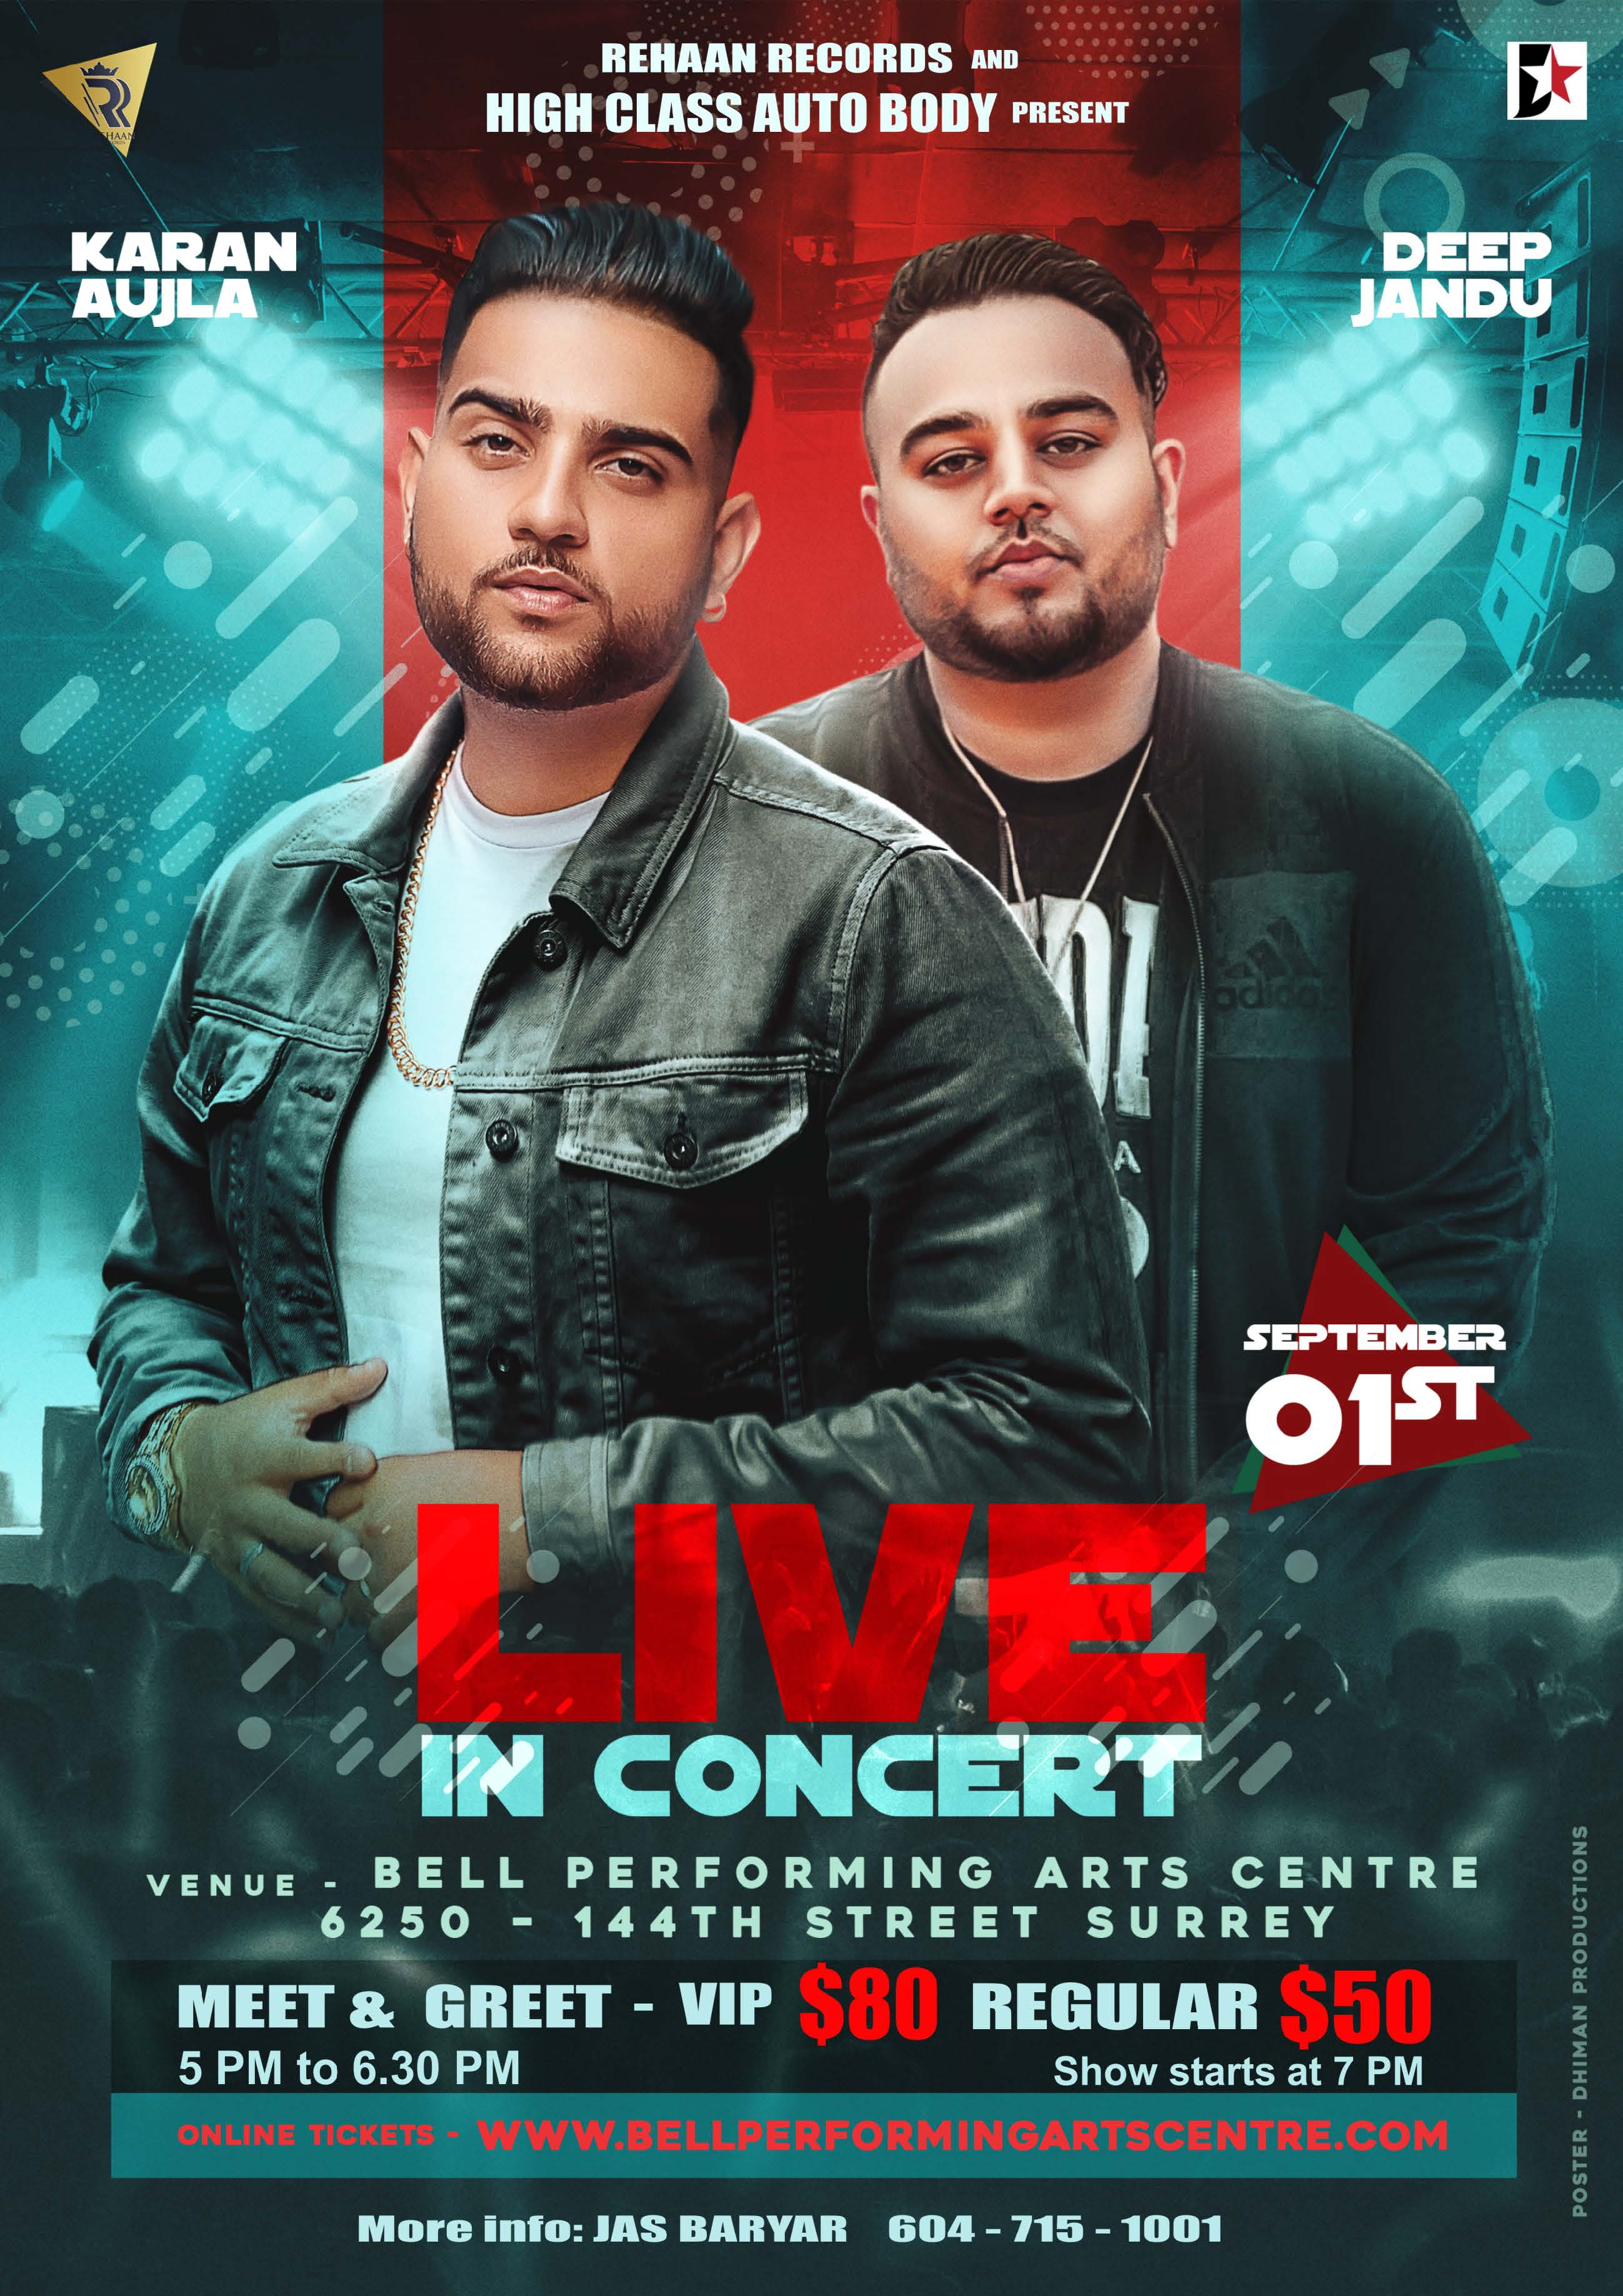 Karan Aujla and Deep Jandu poster Surrey